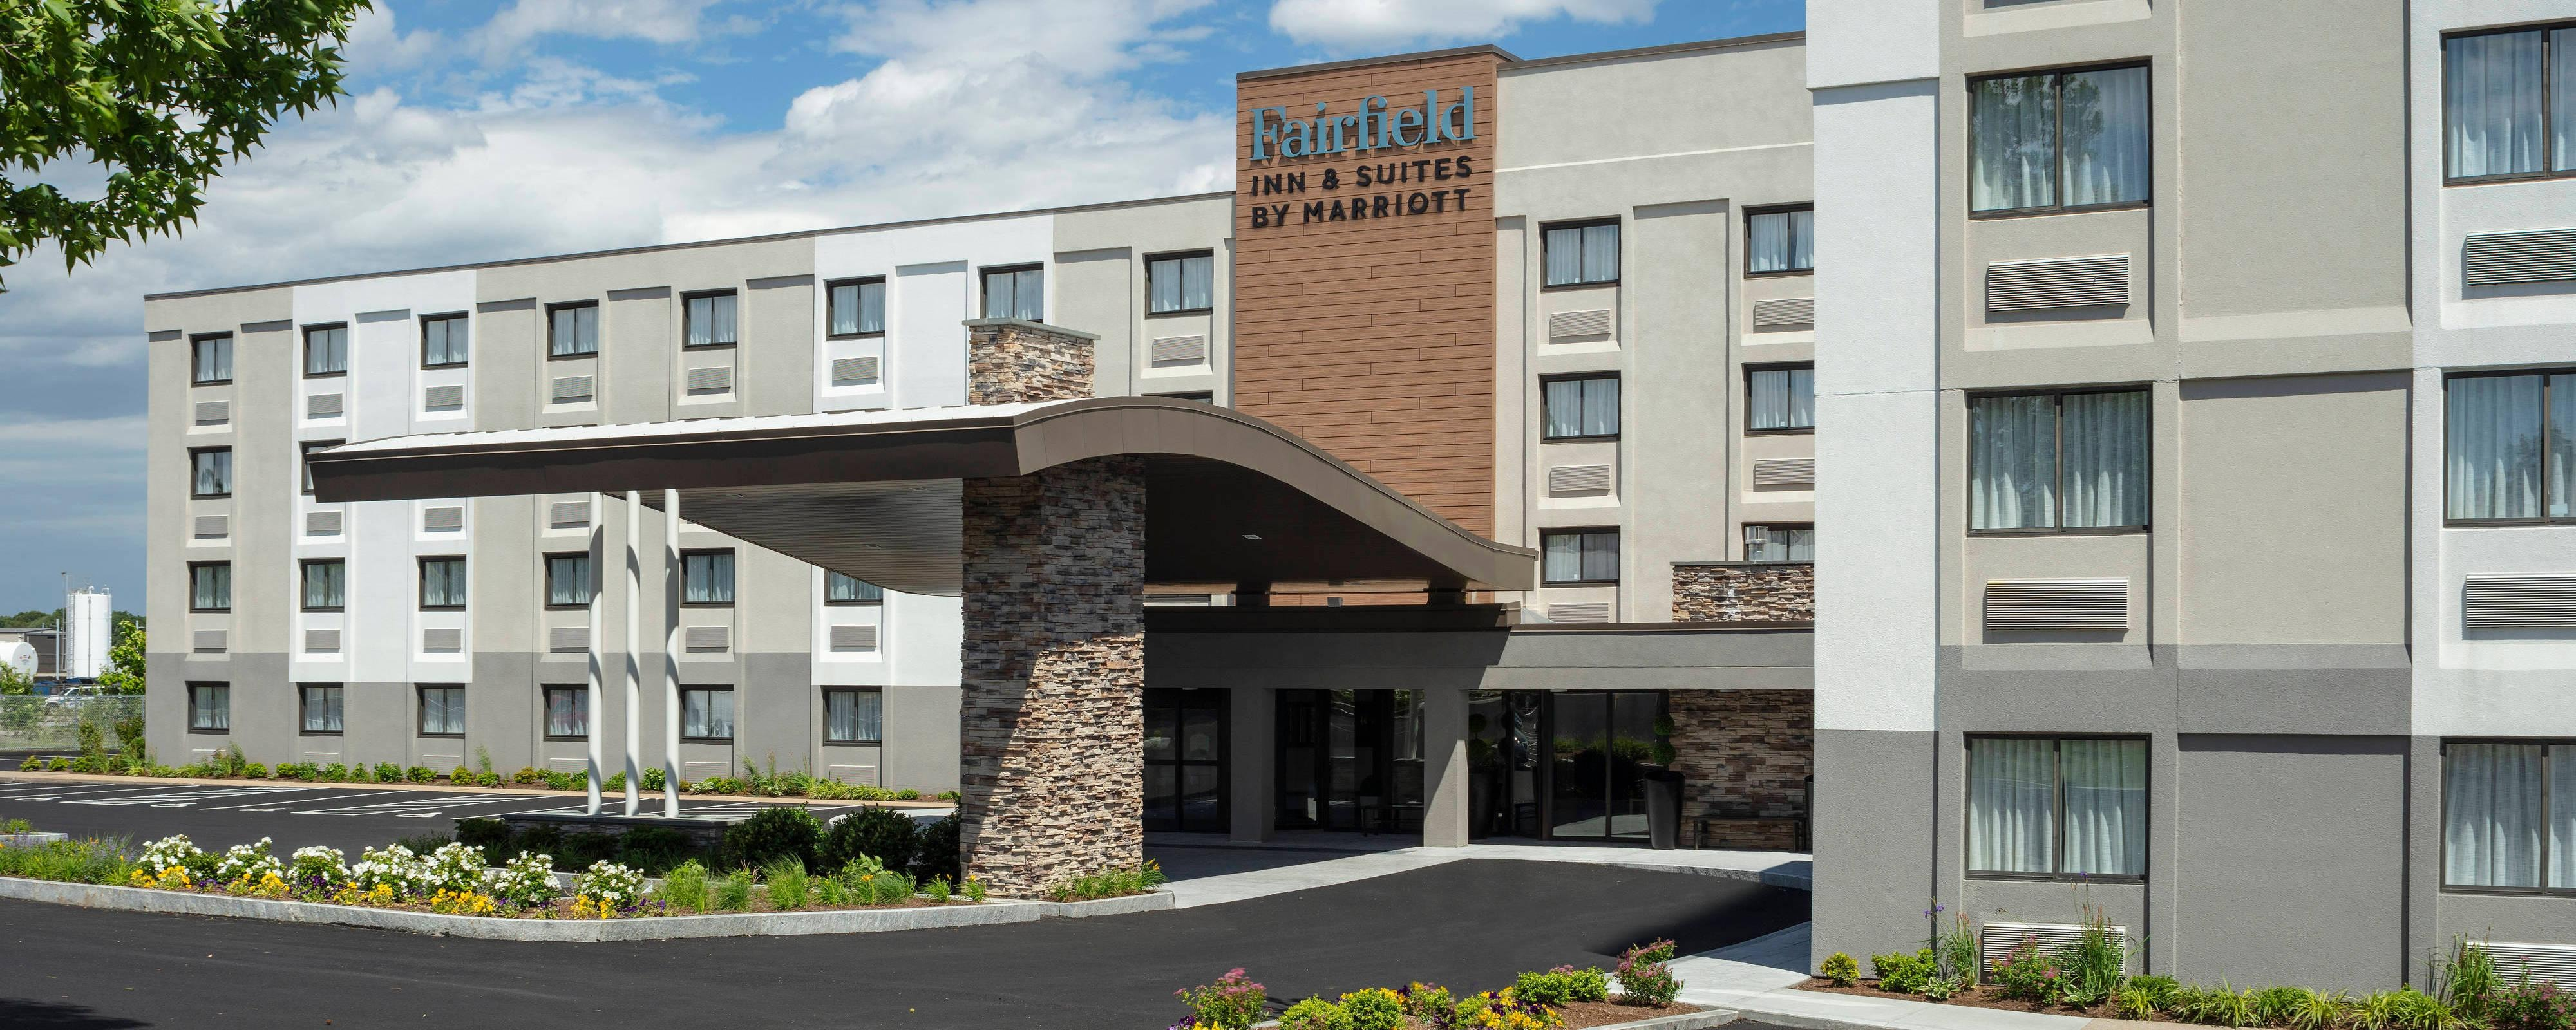 warwick ri hotel deals fairfield inn suites. Black Bedroom Furniture Sets. Home Design Ideas